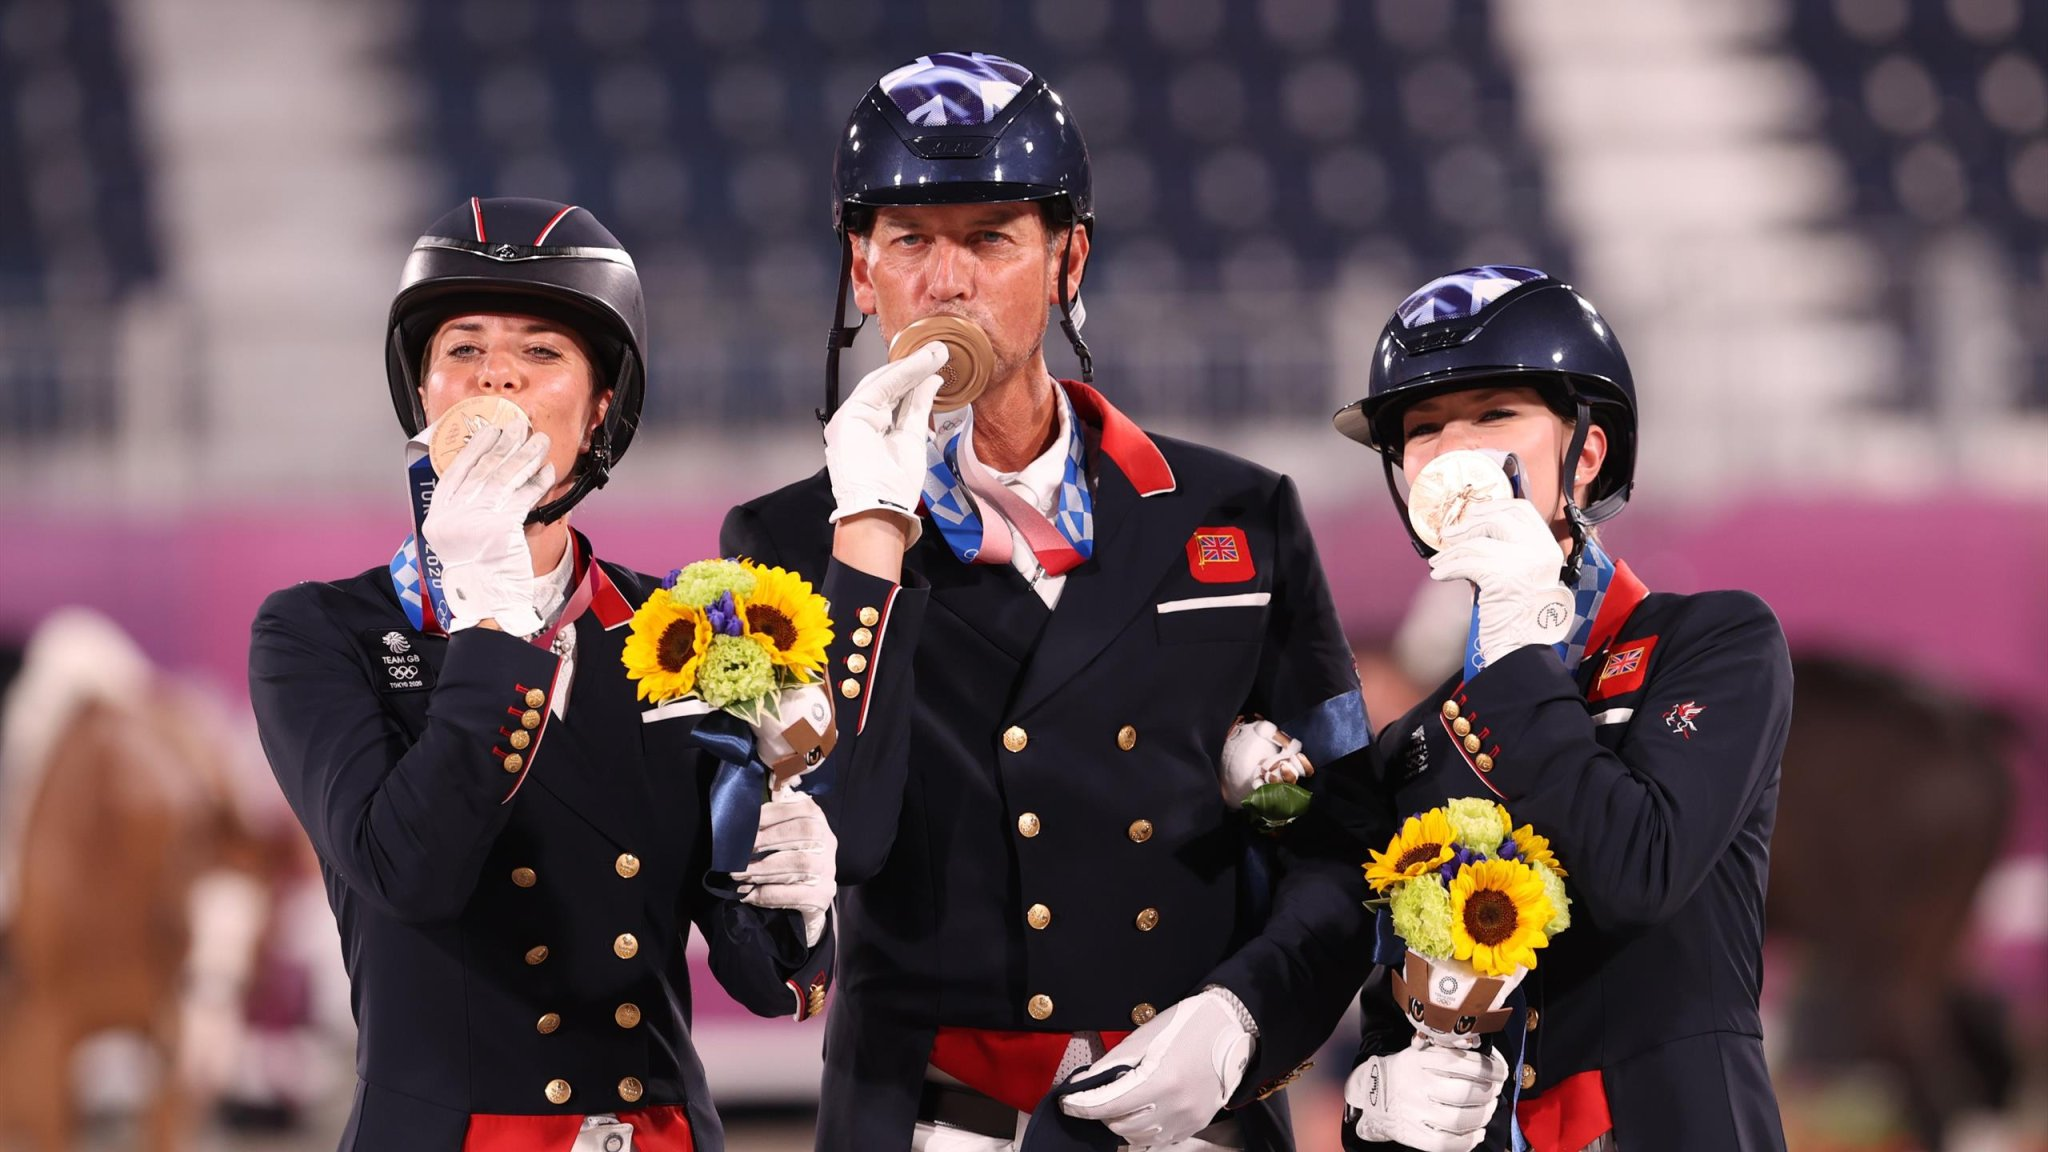 Tokyo 2020 - Team GB settle for bronze as Germany beat USA to gold in high-quality team dressage final